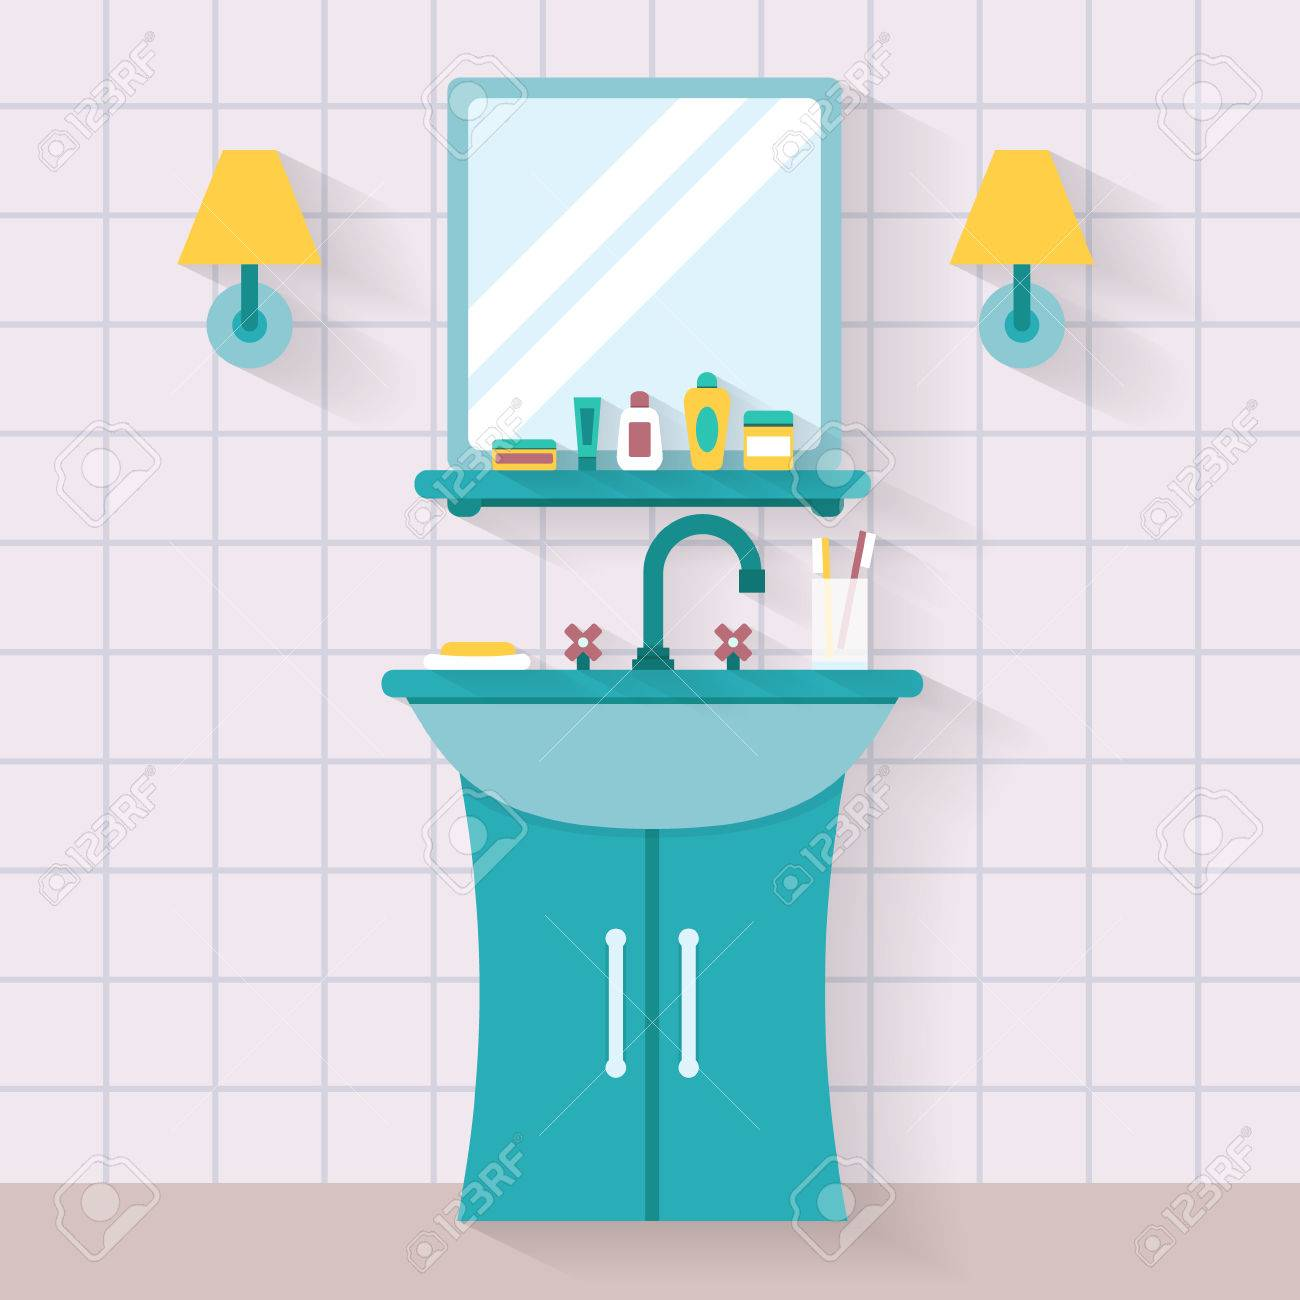 bathroom sink with mirror. flat style vector illustration. royalty